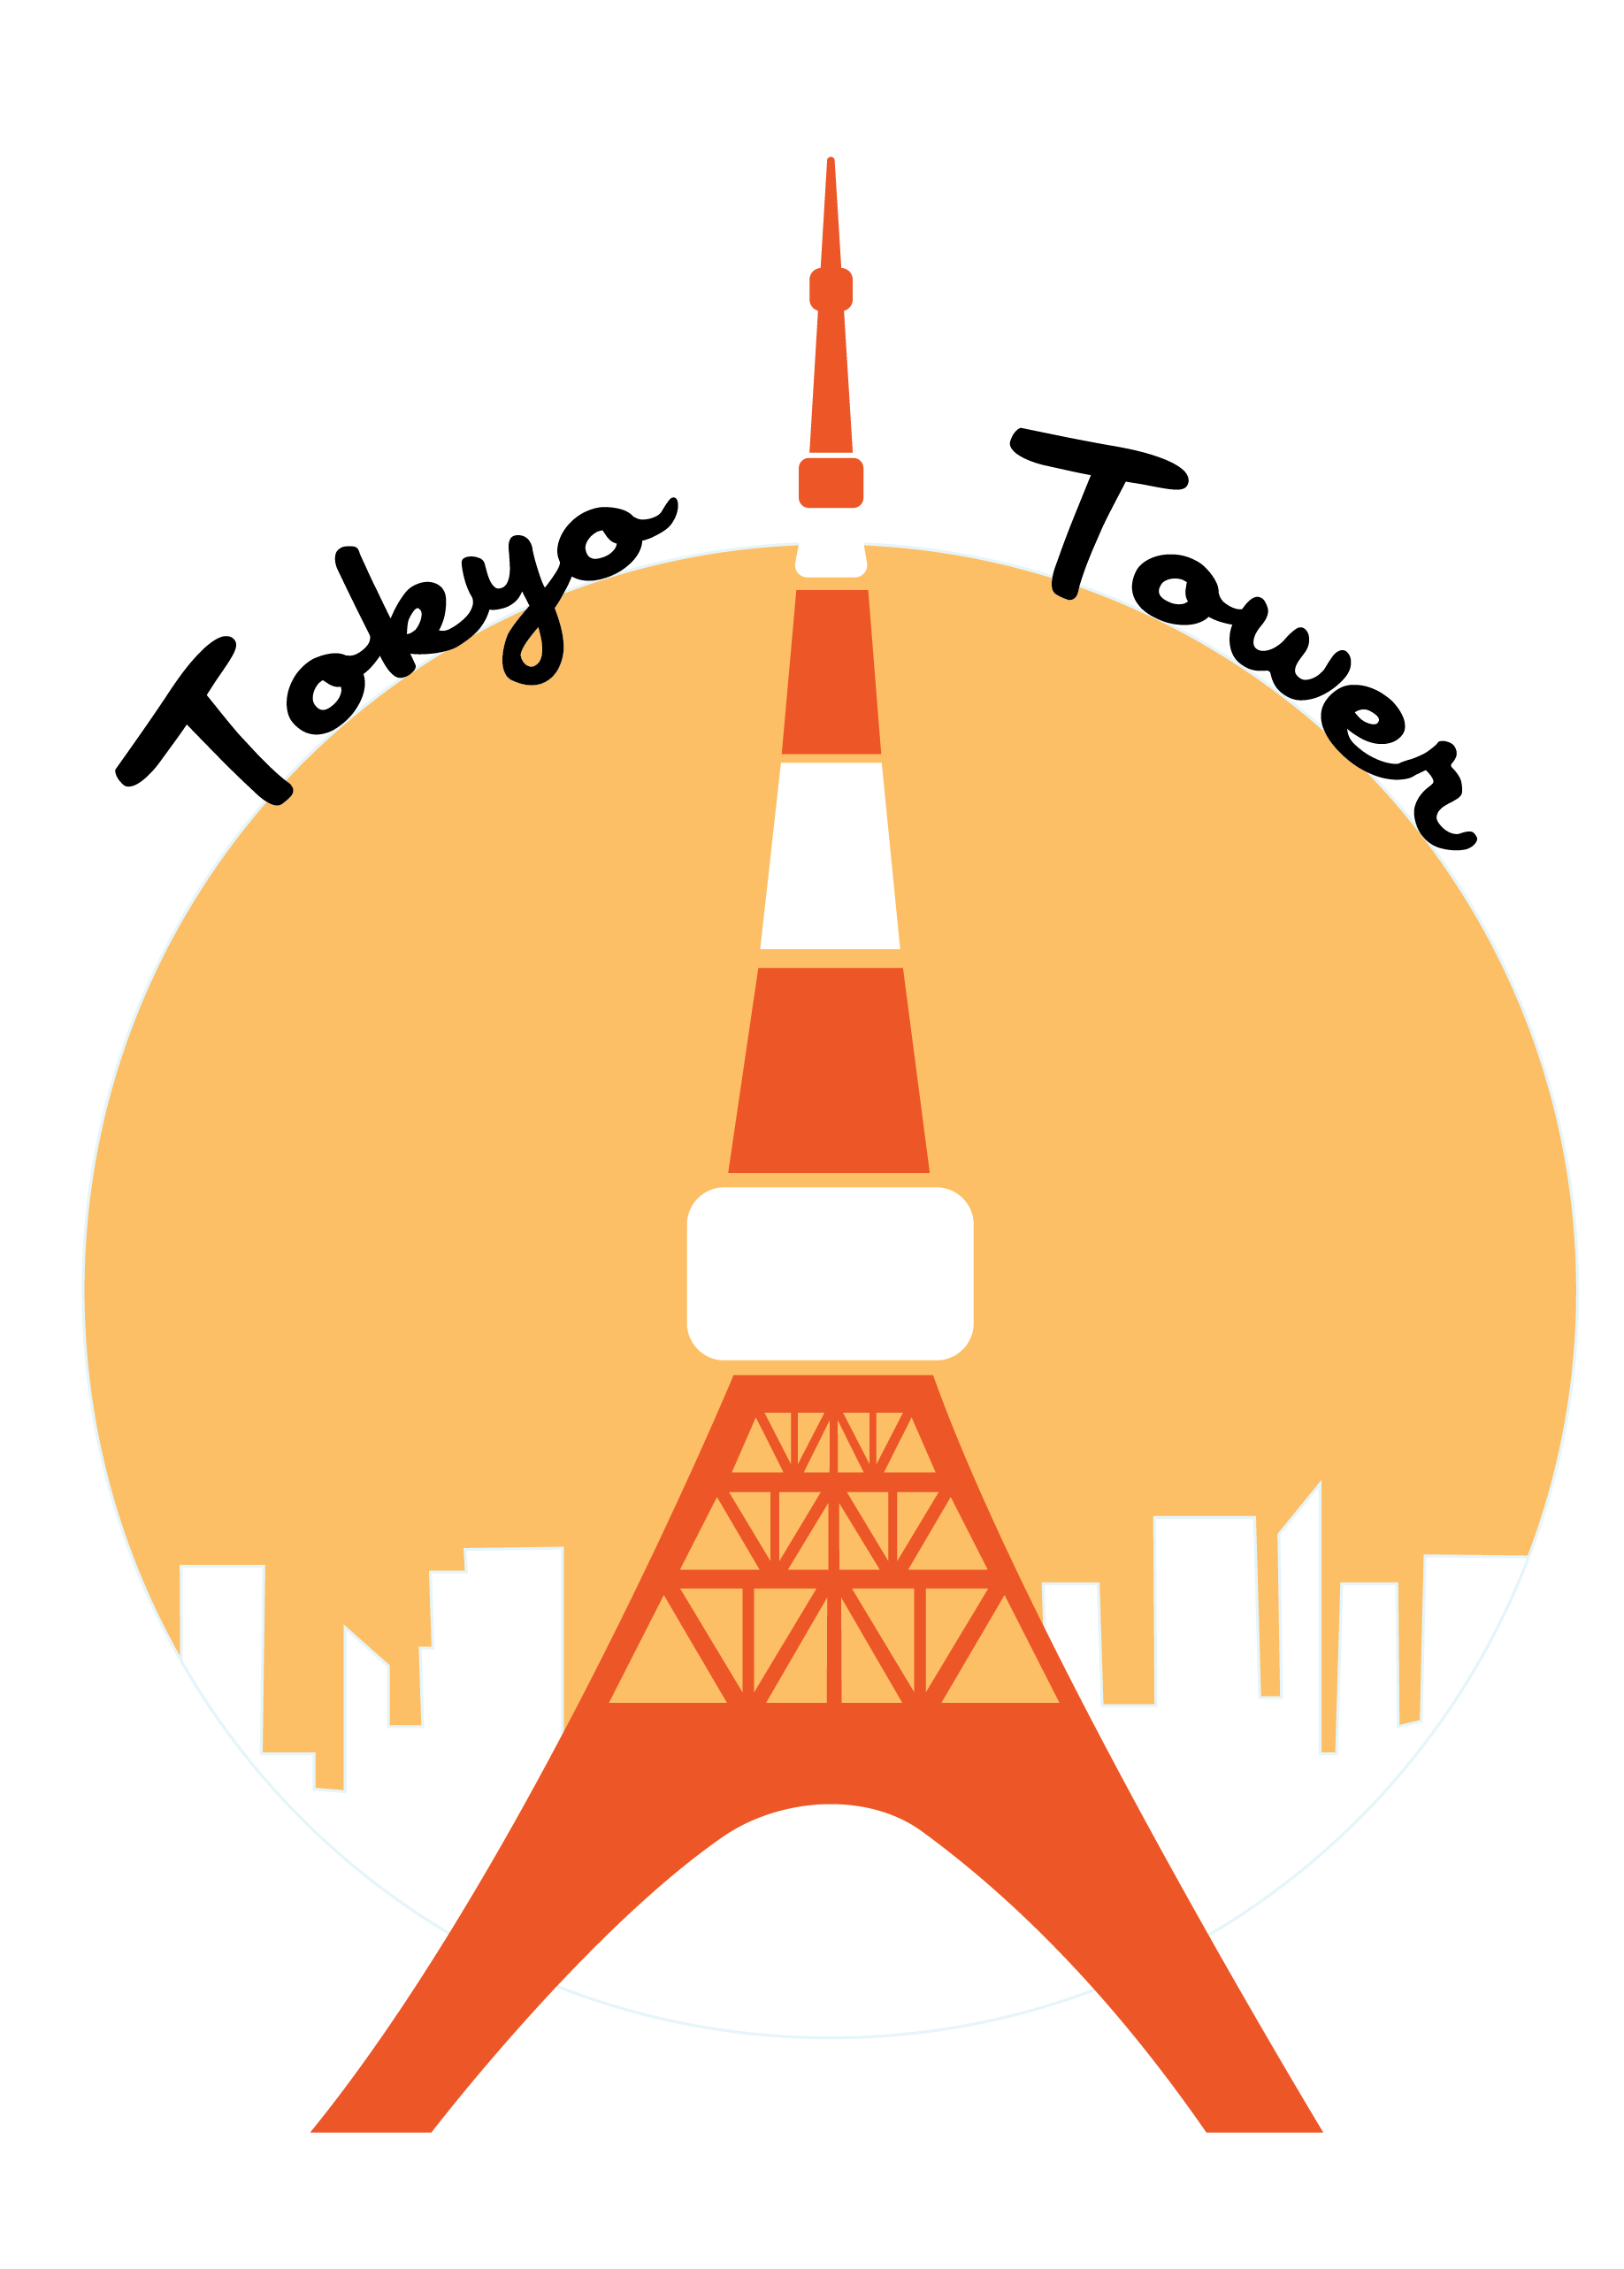 Tower clipart logo. Briefbox tokyo by anthony